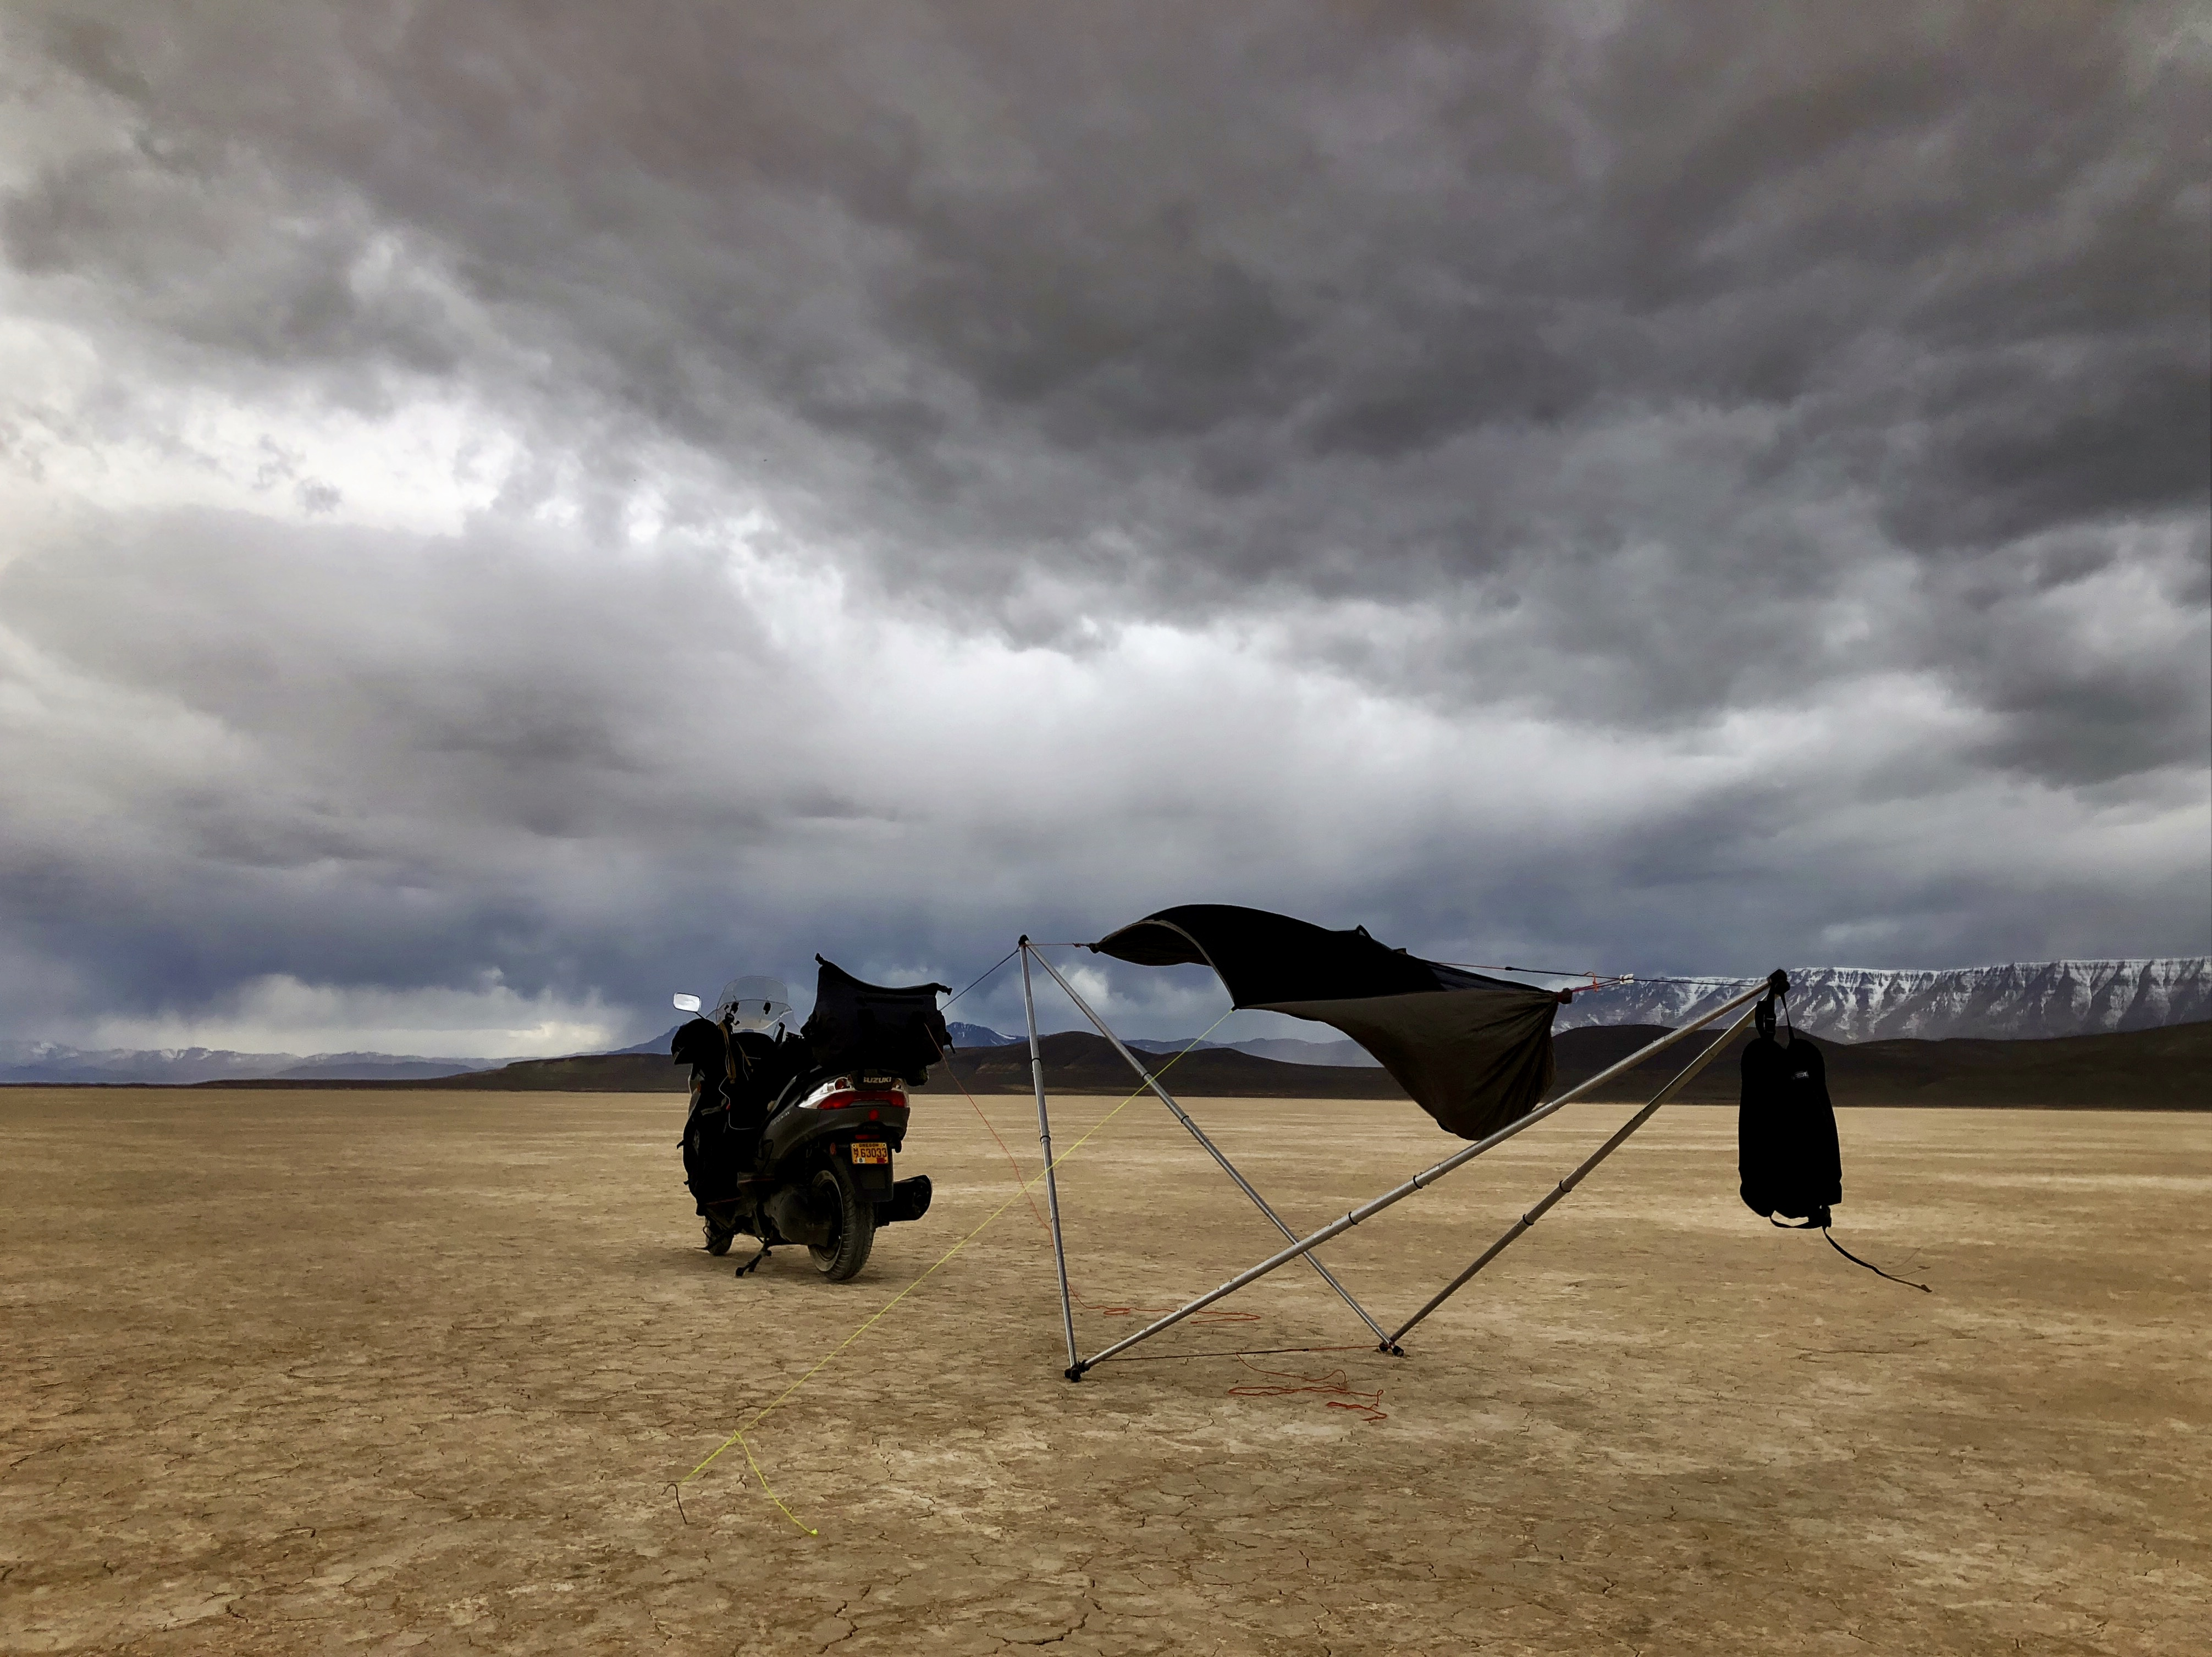 Trial setup on the Alvord Desert playa. Too windy and threat of lightning, mud.